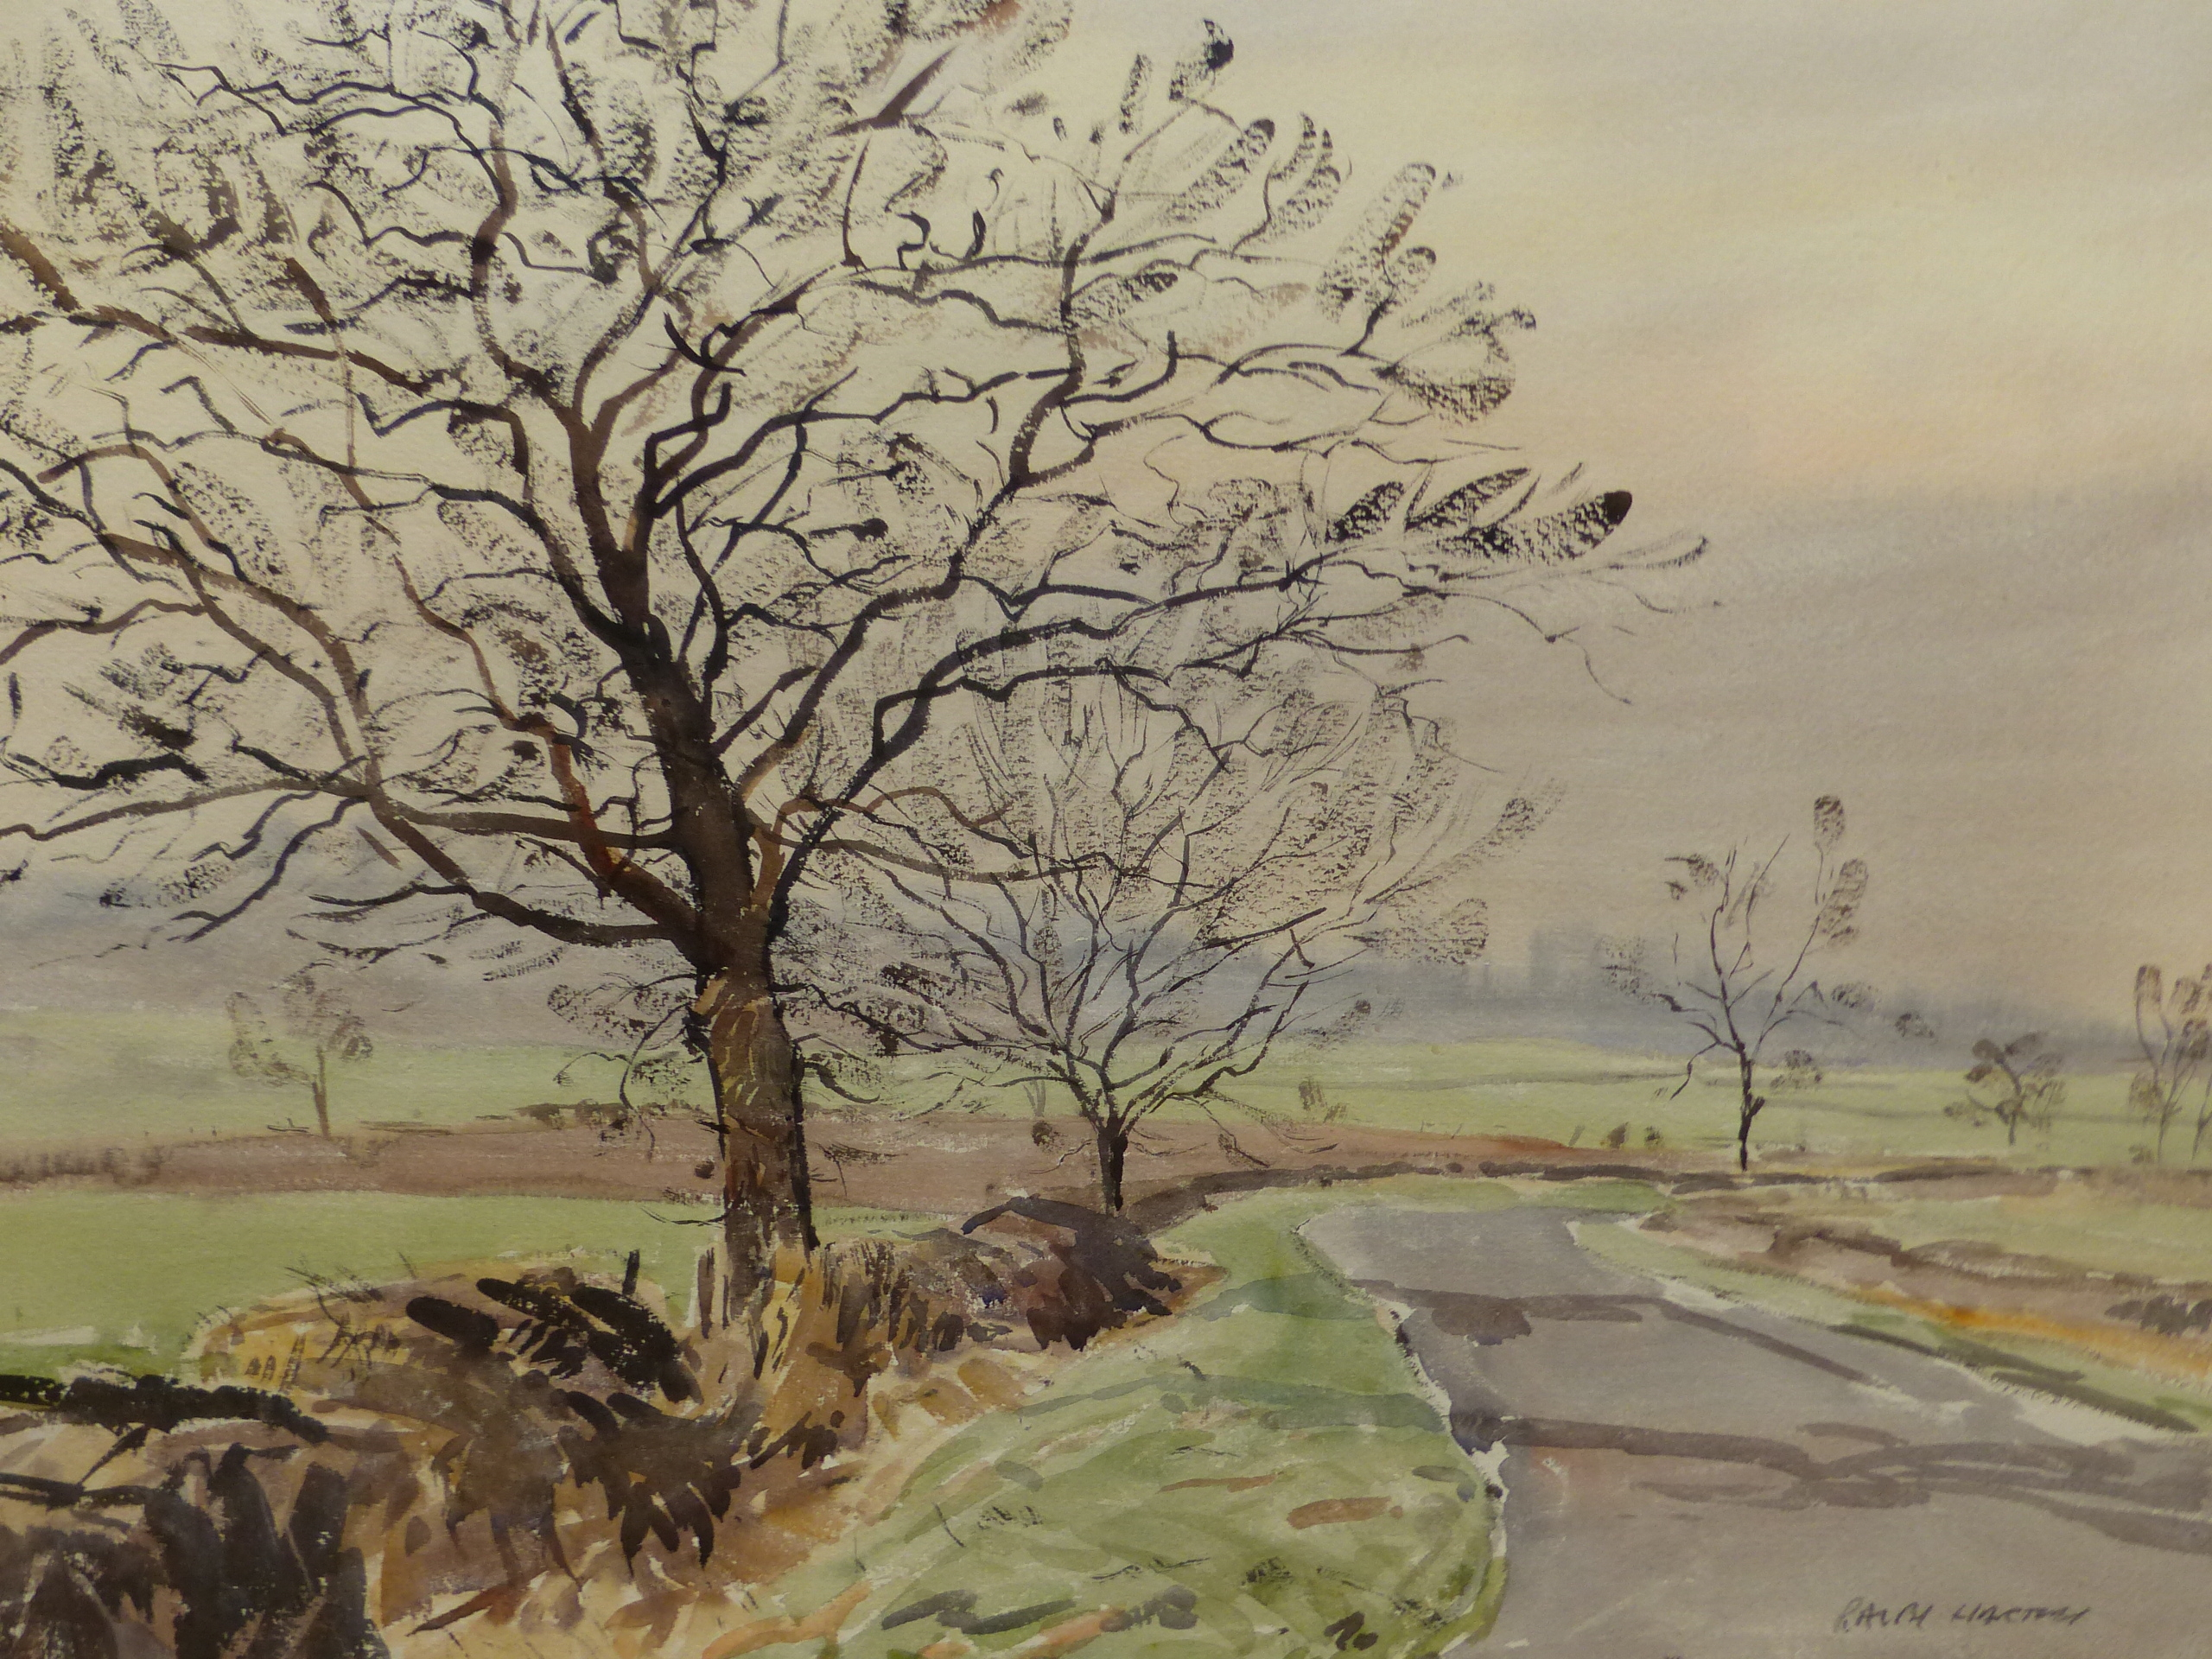 •RALPH HARTLEY (1926-1988 ARR. TWO LANDSCAPE OF TREES IN RURAL SETTINGS, SIGNED WATERCOLOURS 57 x 76